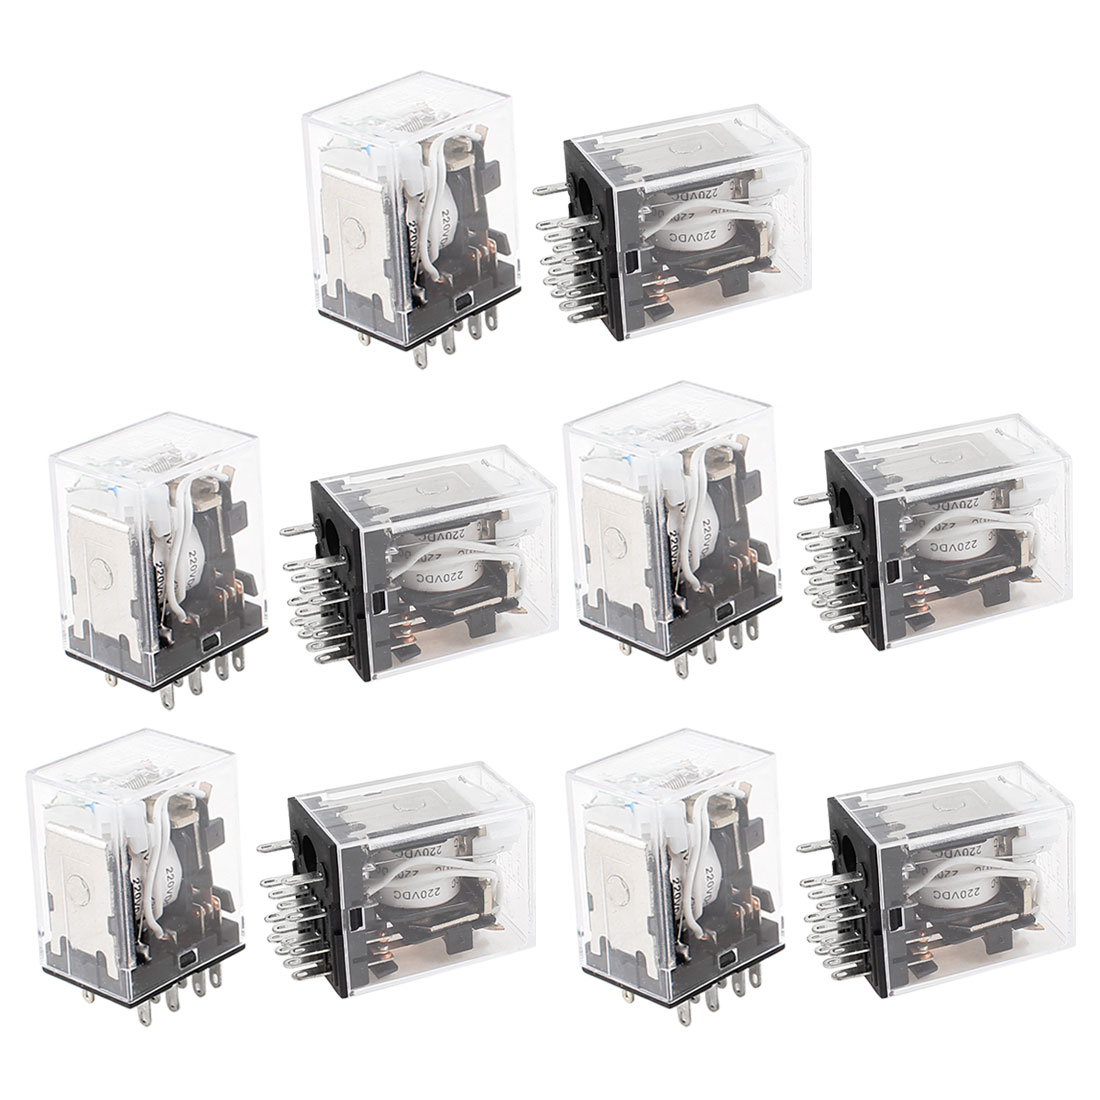 10 Pcs HH54PL DC 220V Coil 4PDT Green LED Lamp Light General Purpose Power Relay